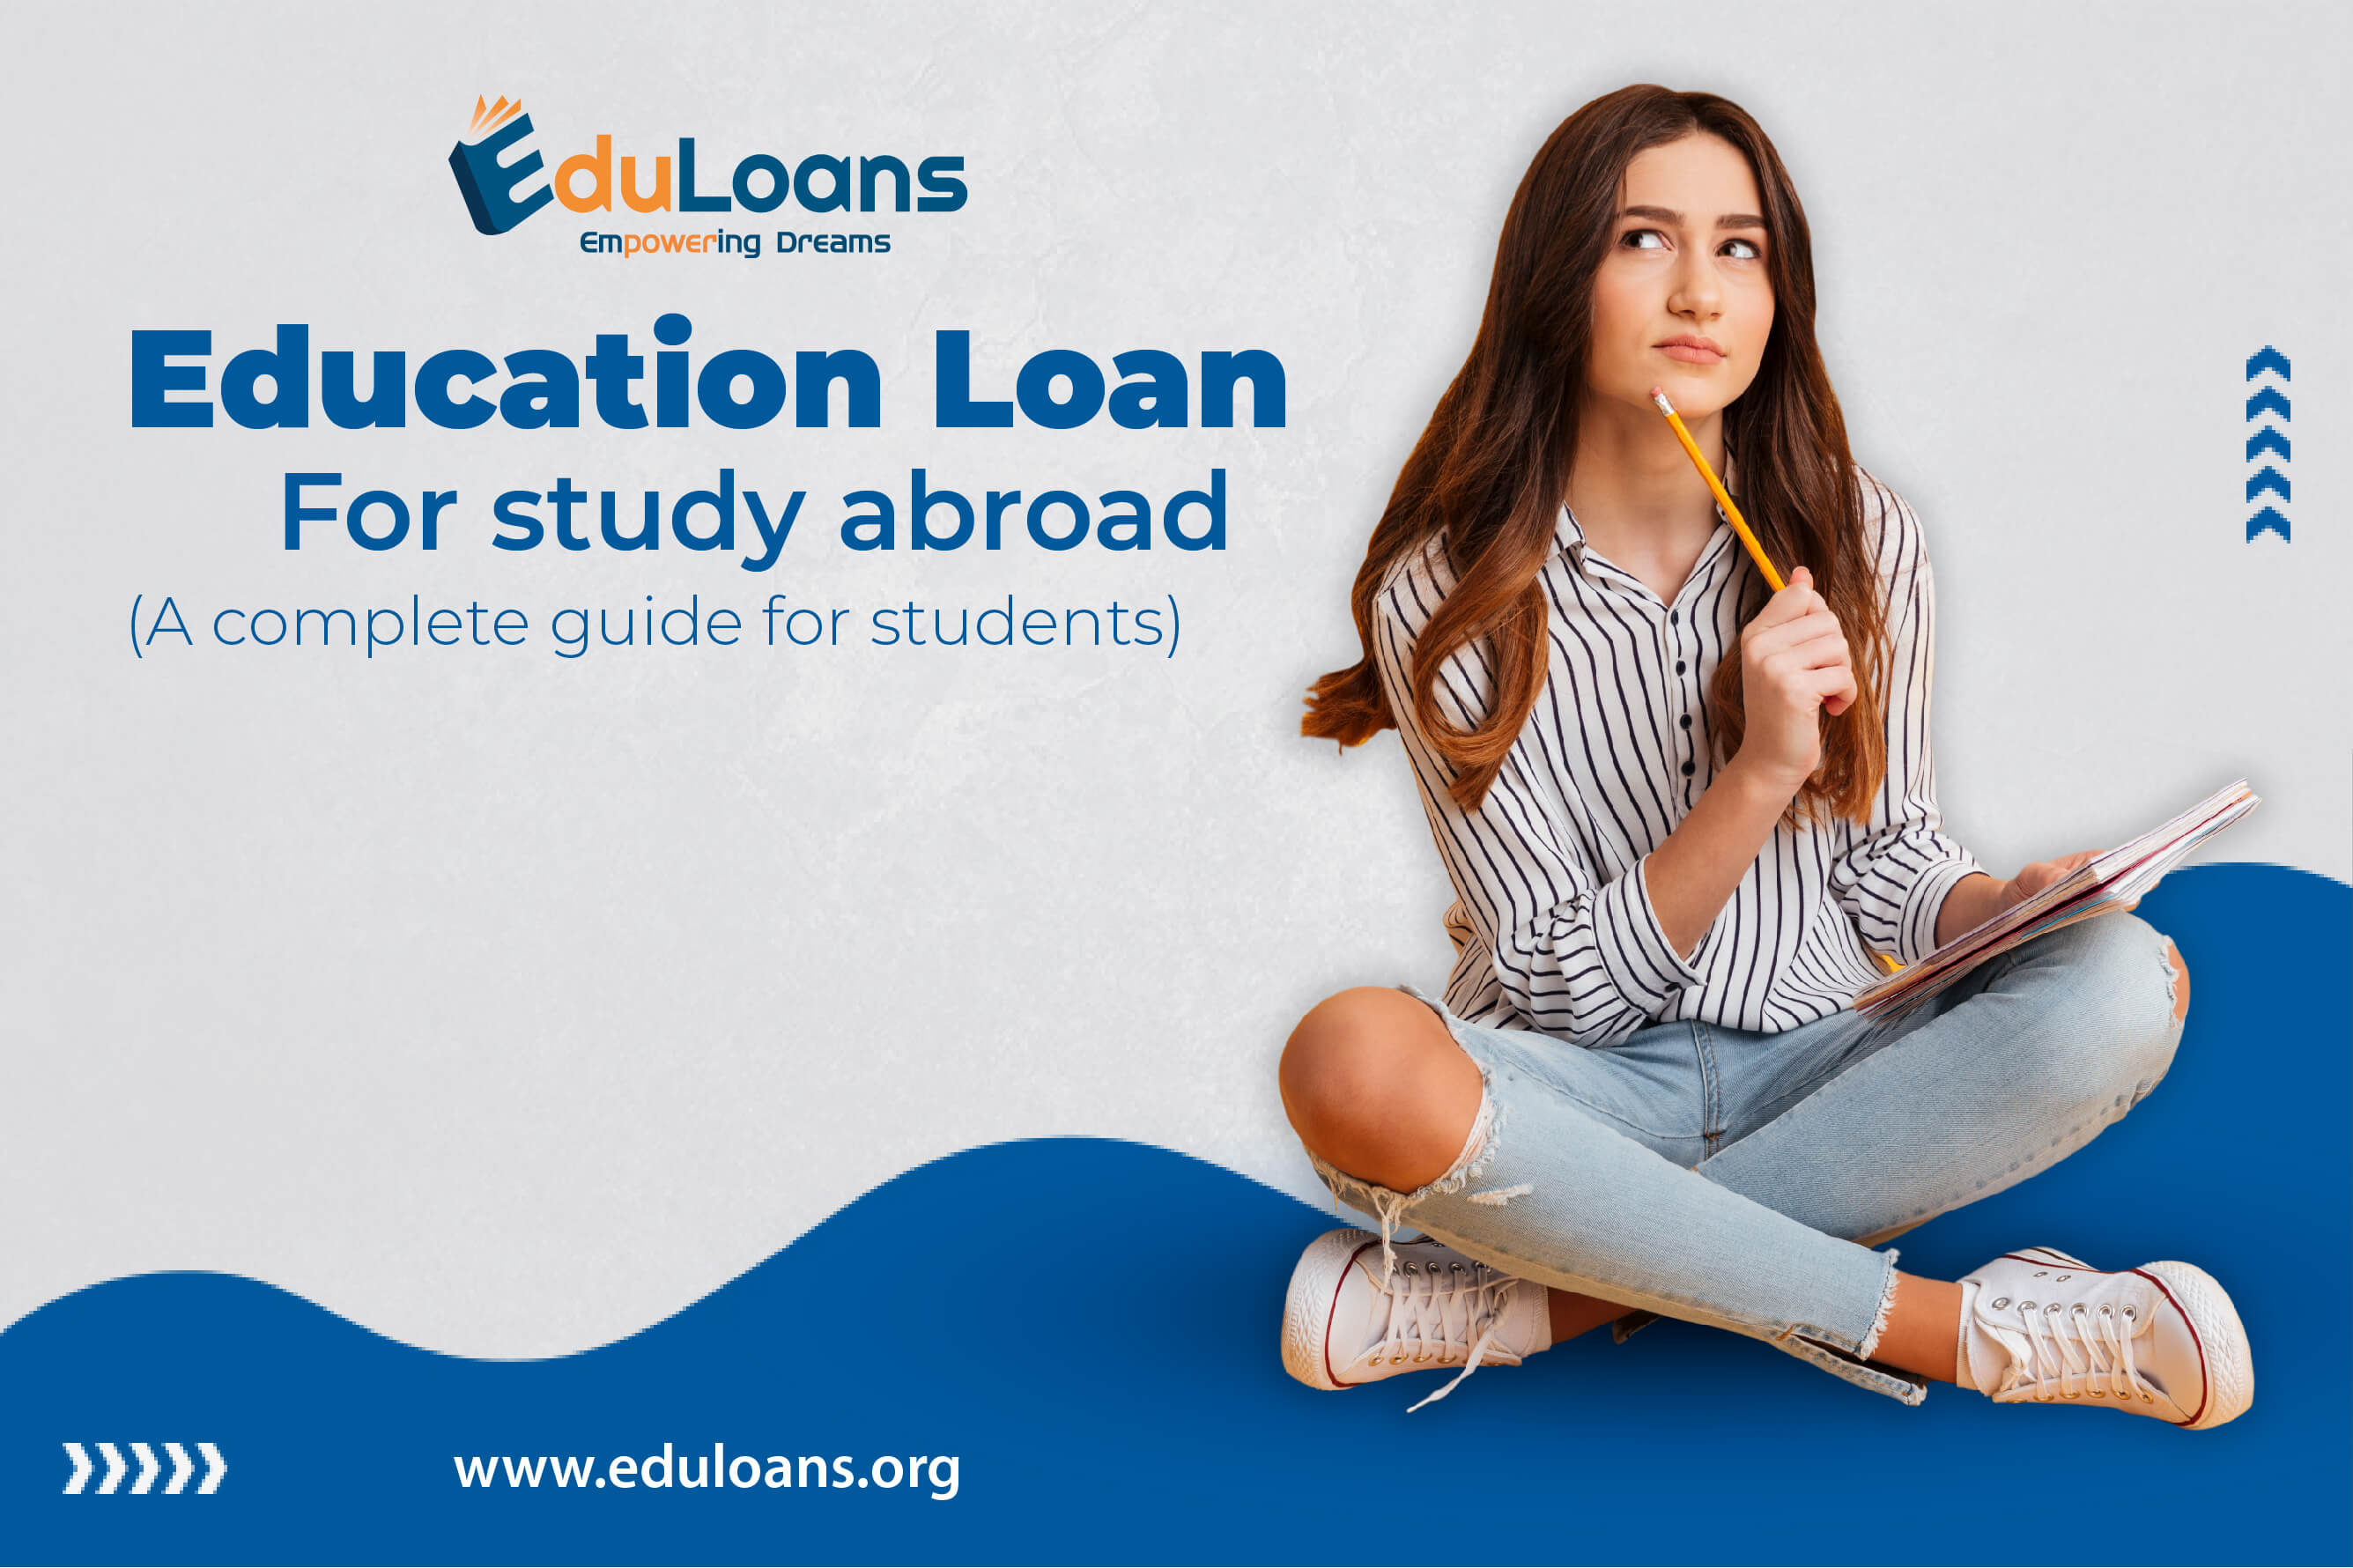 Education loan for study abroad: A complete guide for students